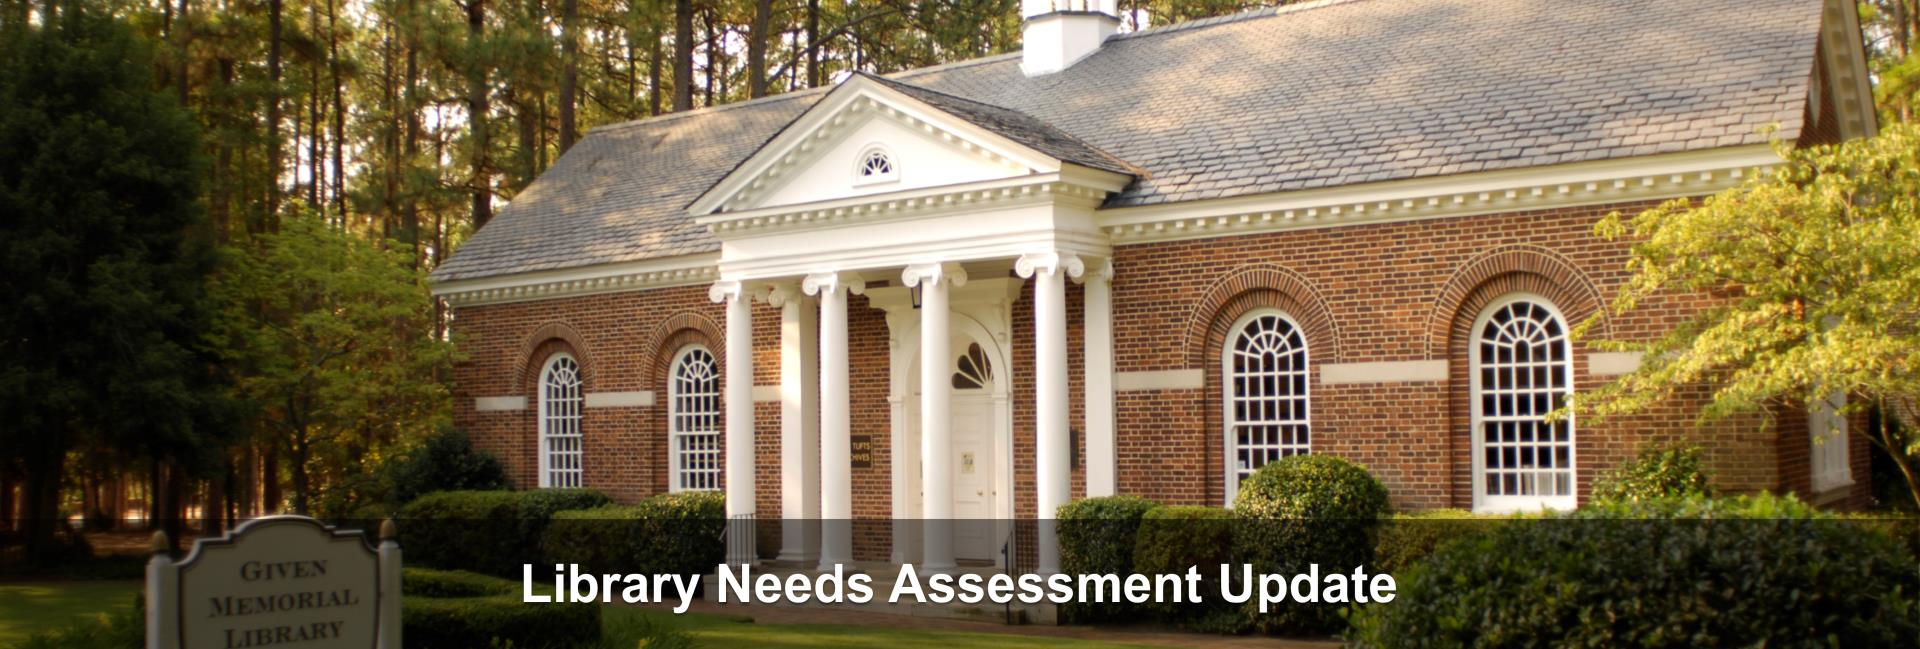 Library Needs Assessment Update